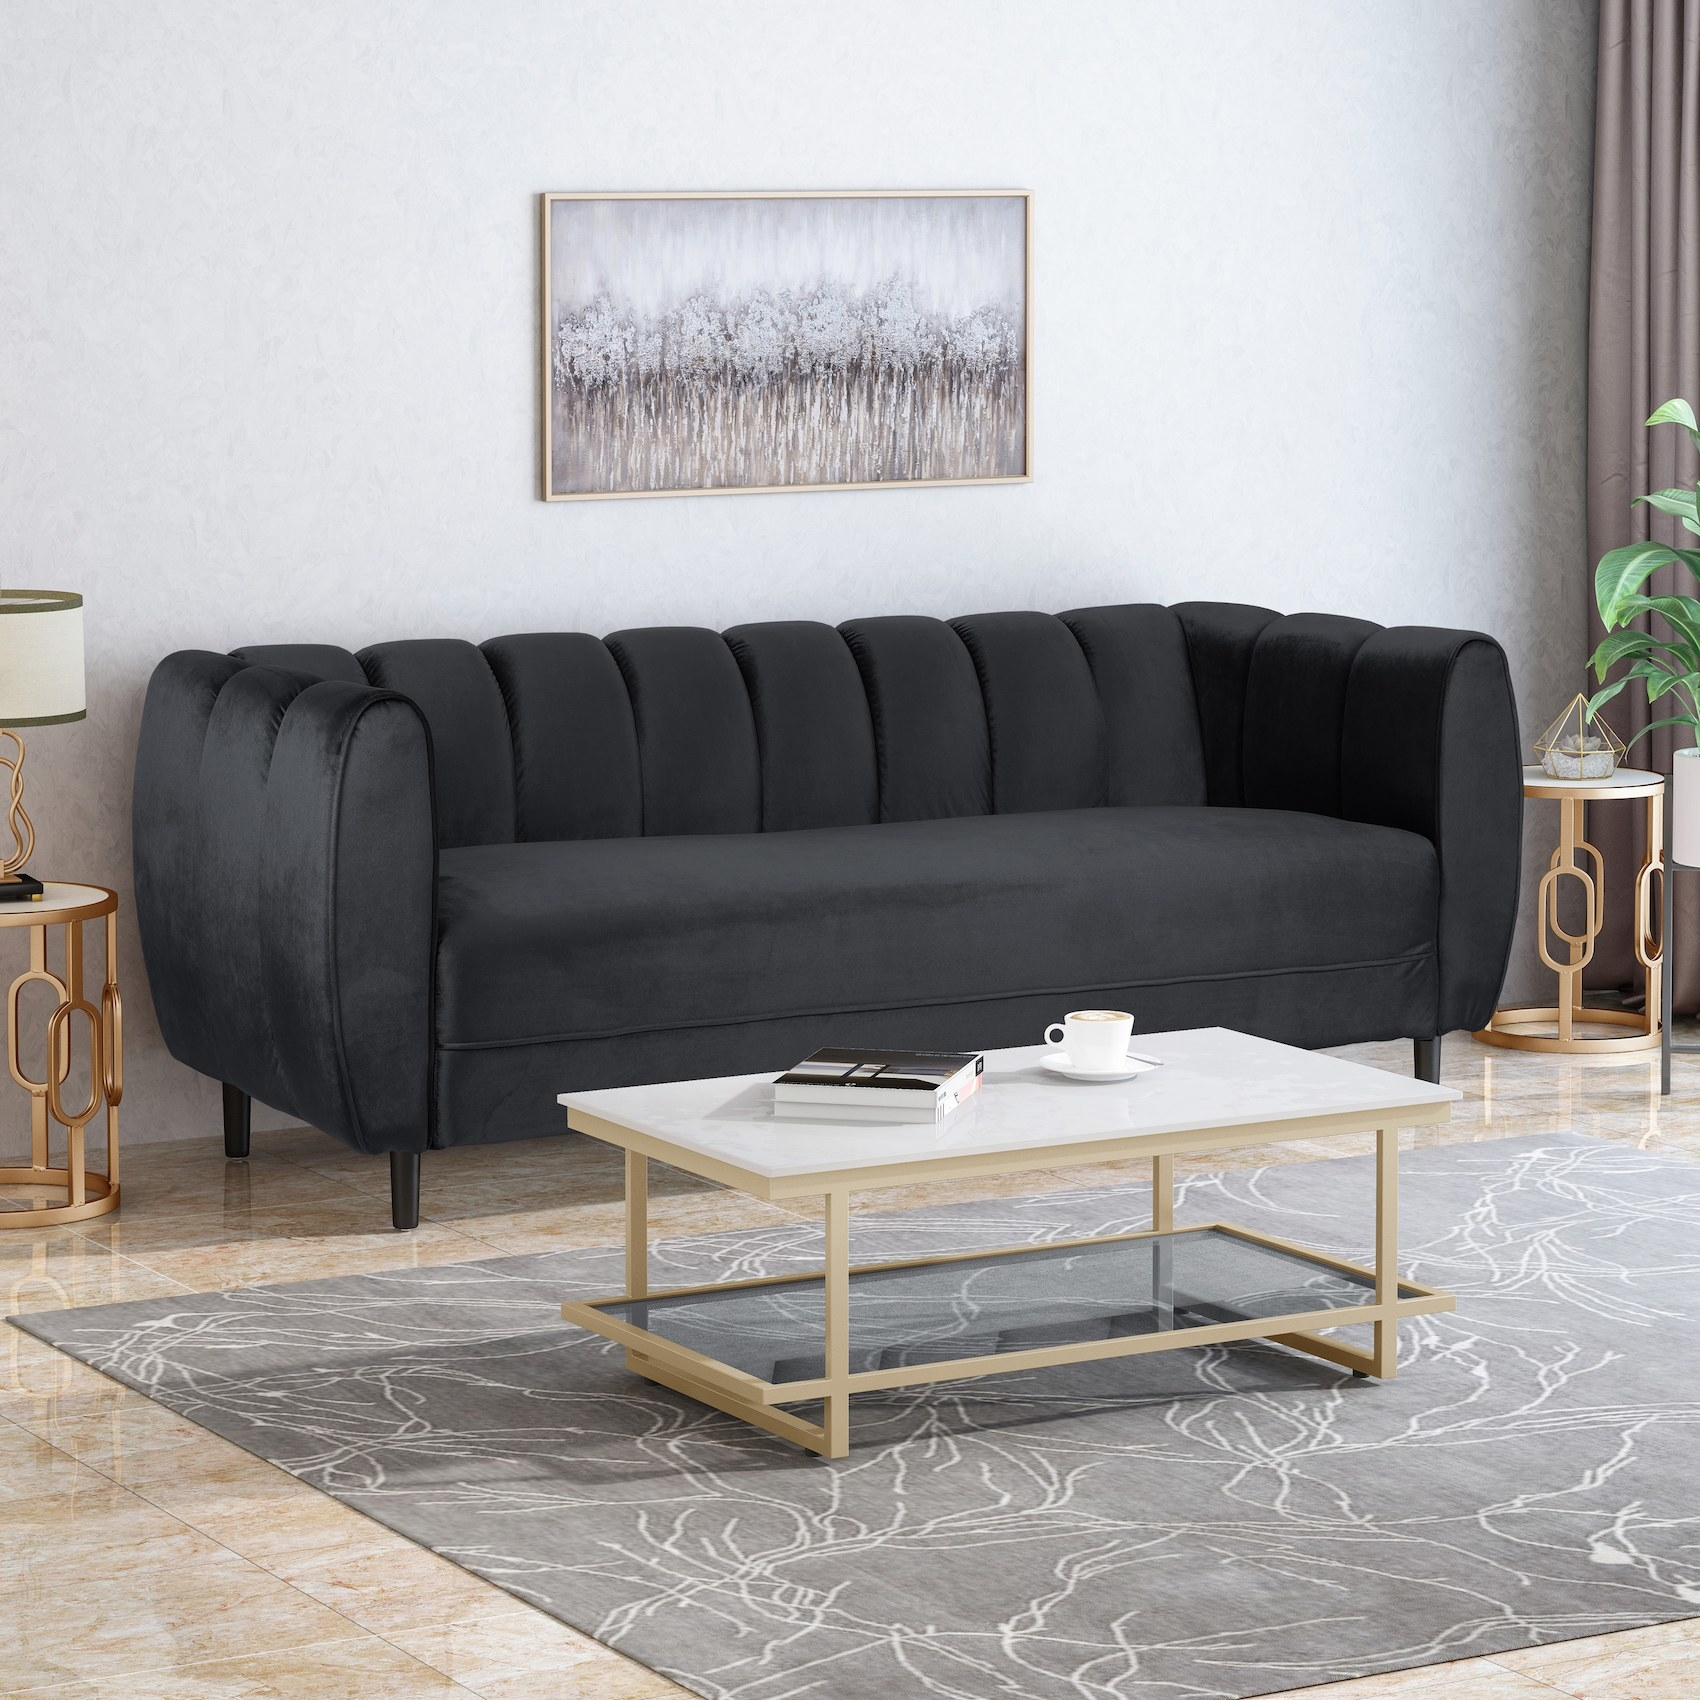 The black velvet couch with a textured back cushion that has vertical lines